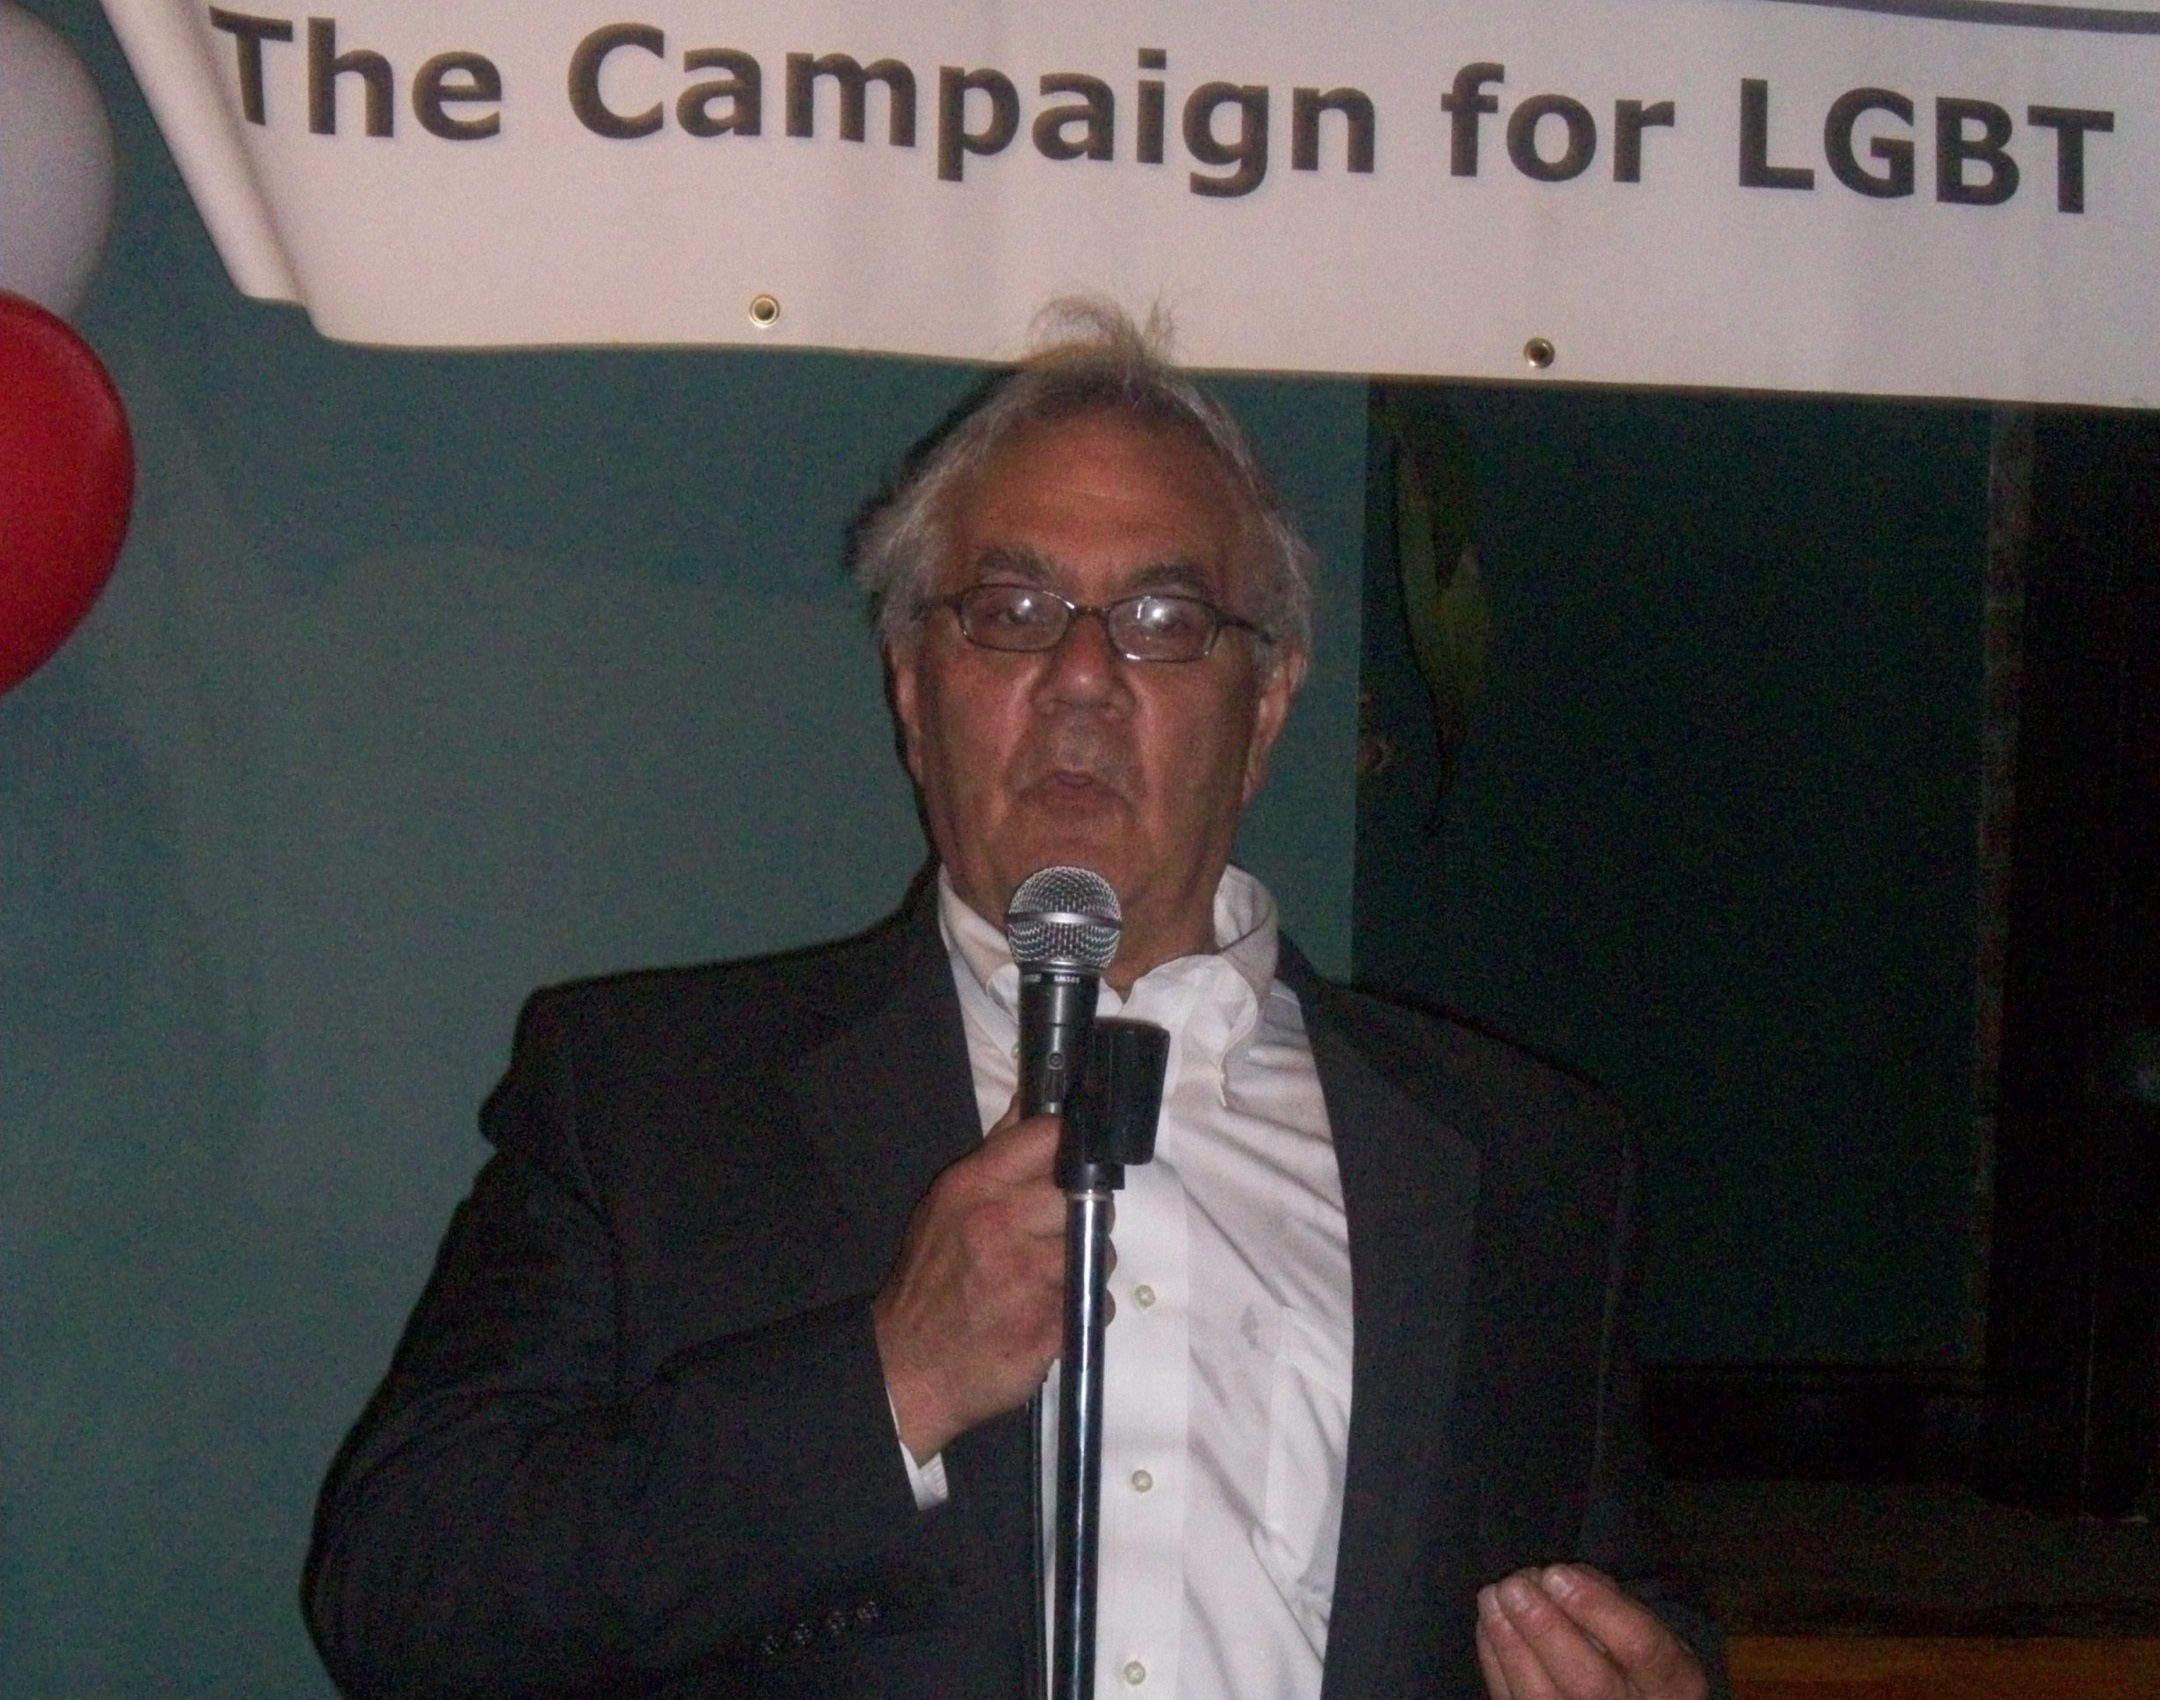 Rep Barney Frank speaks in front of MassEquality banner.